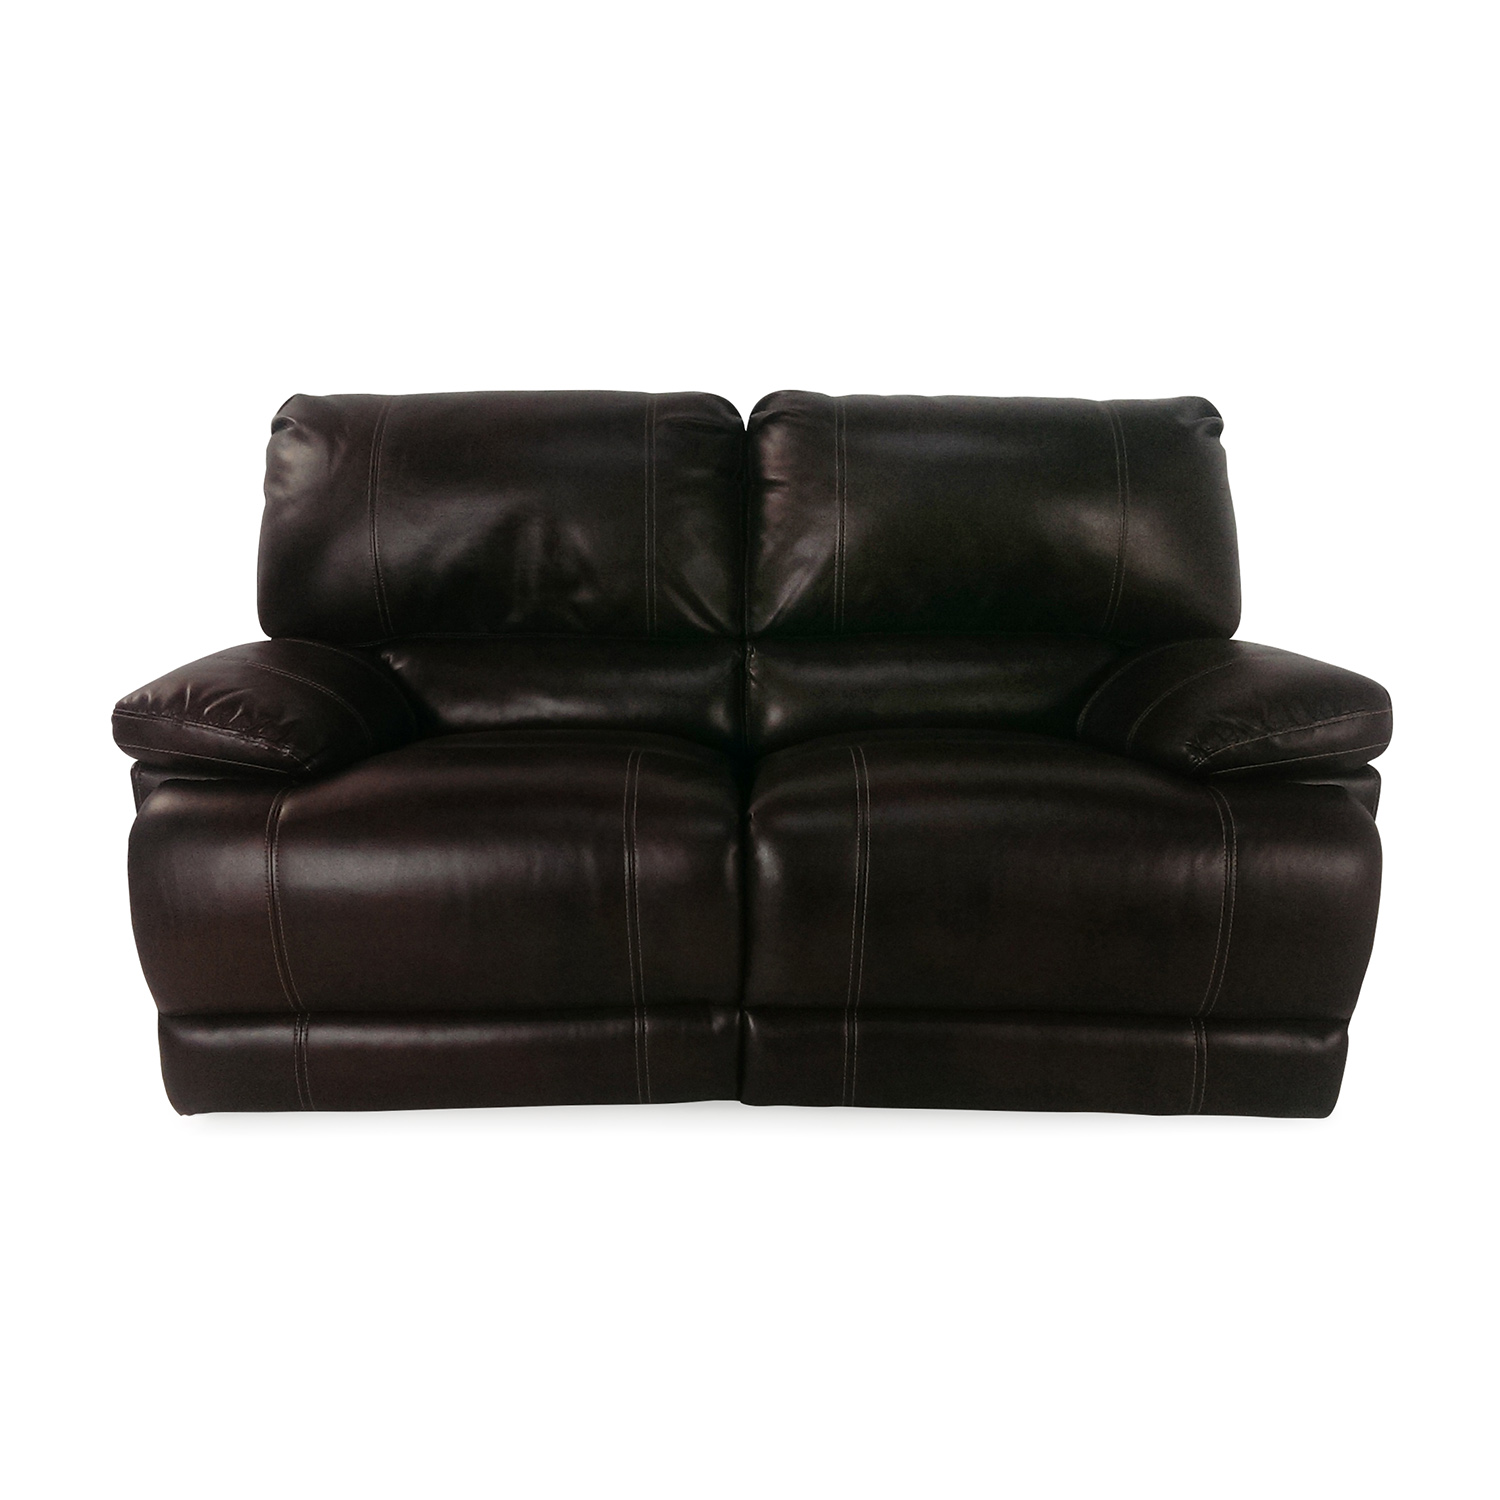 bobs furniture sofa recliner black and white cushions 50 off reclining loveseat